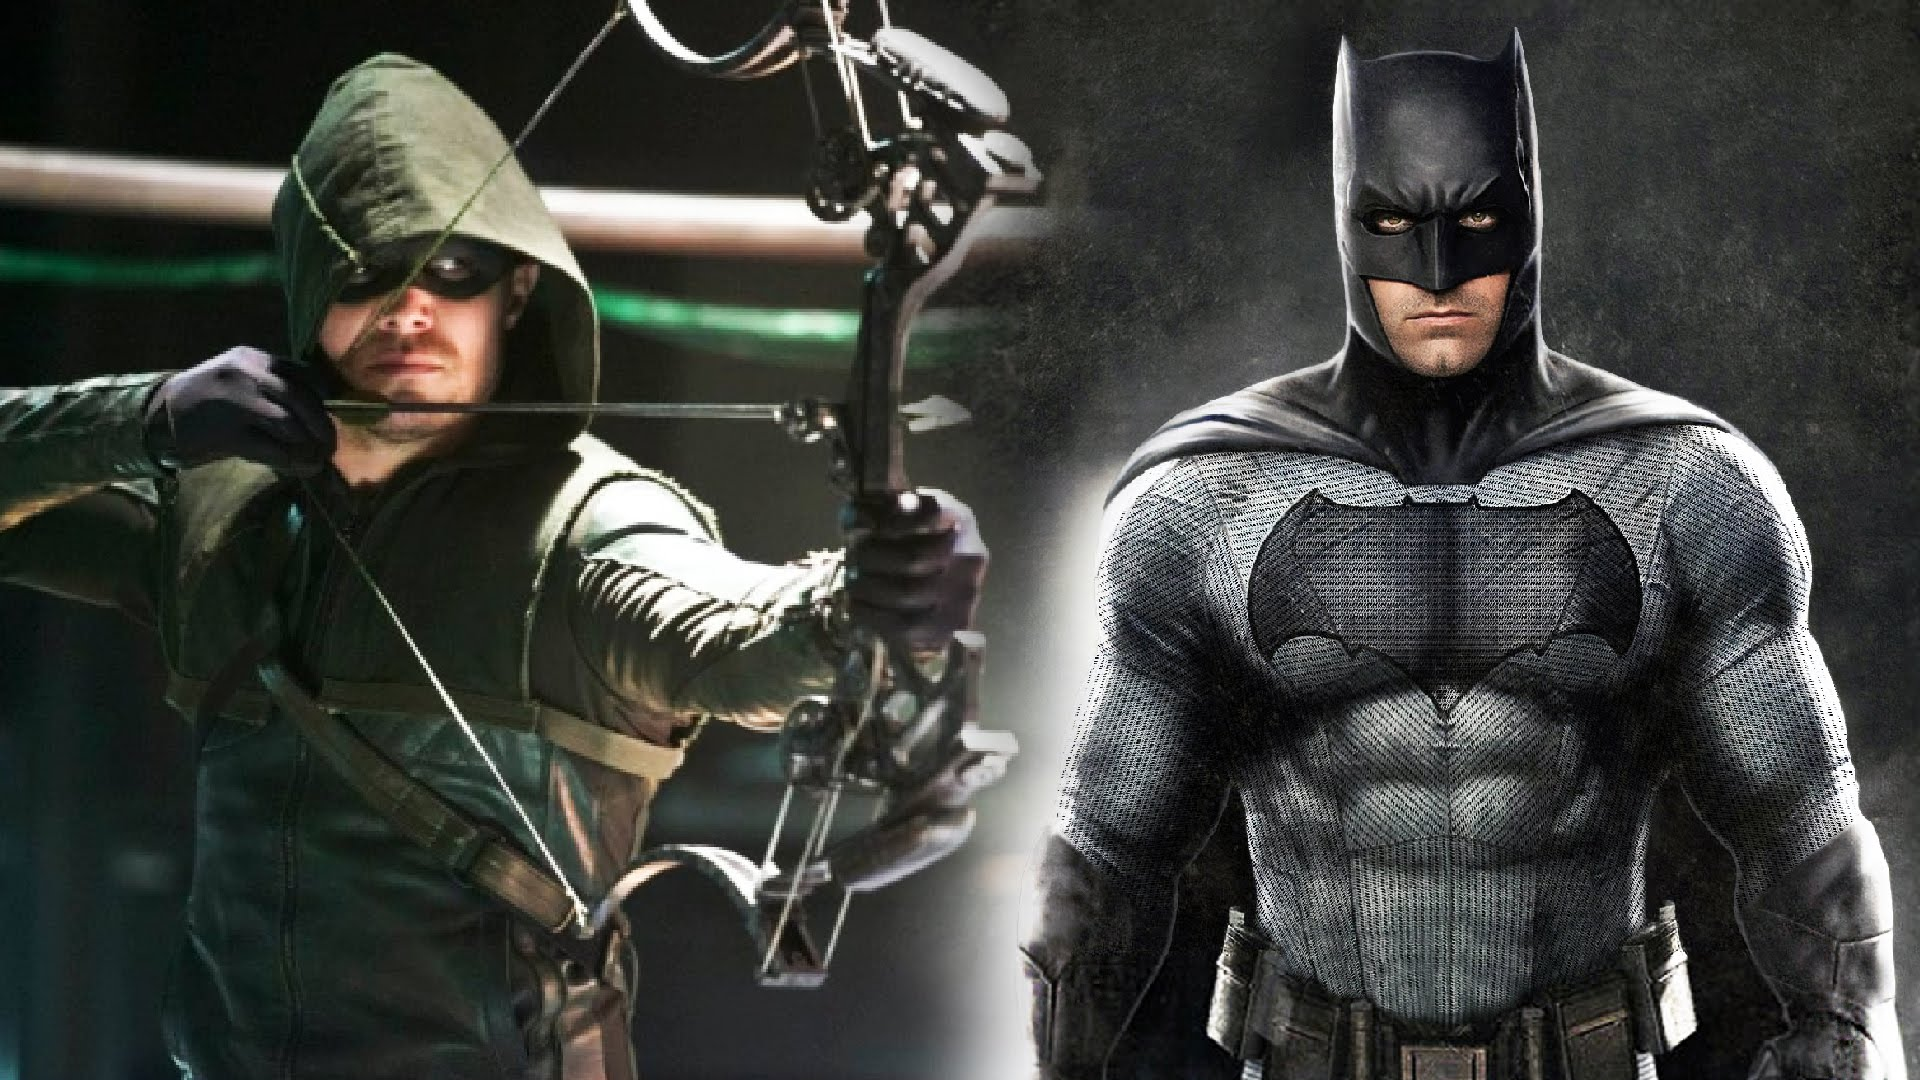 Photo of 5 Times Green Arrow Was Inspired From The Dark Knight